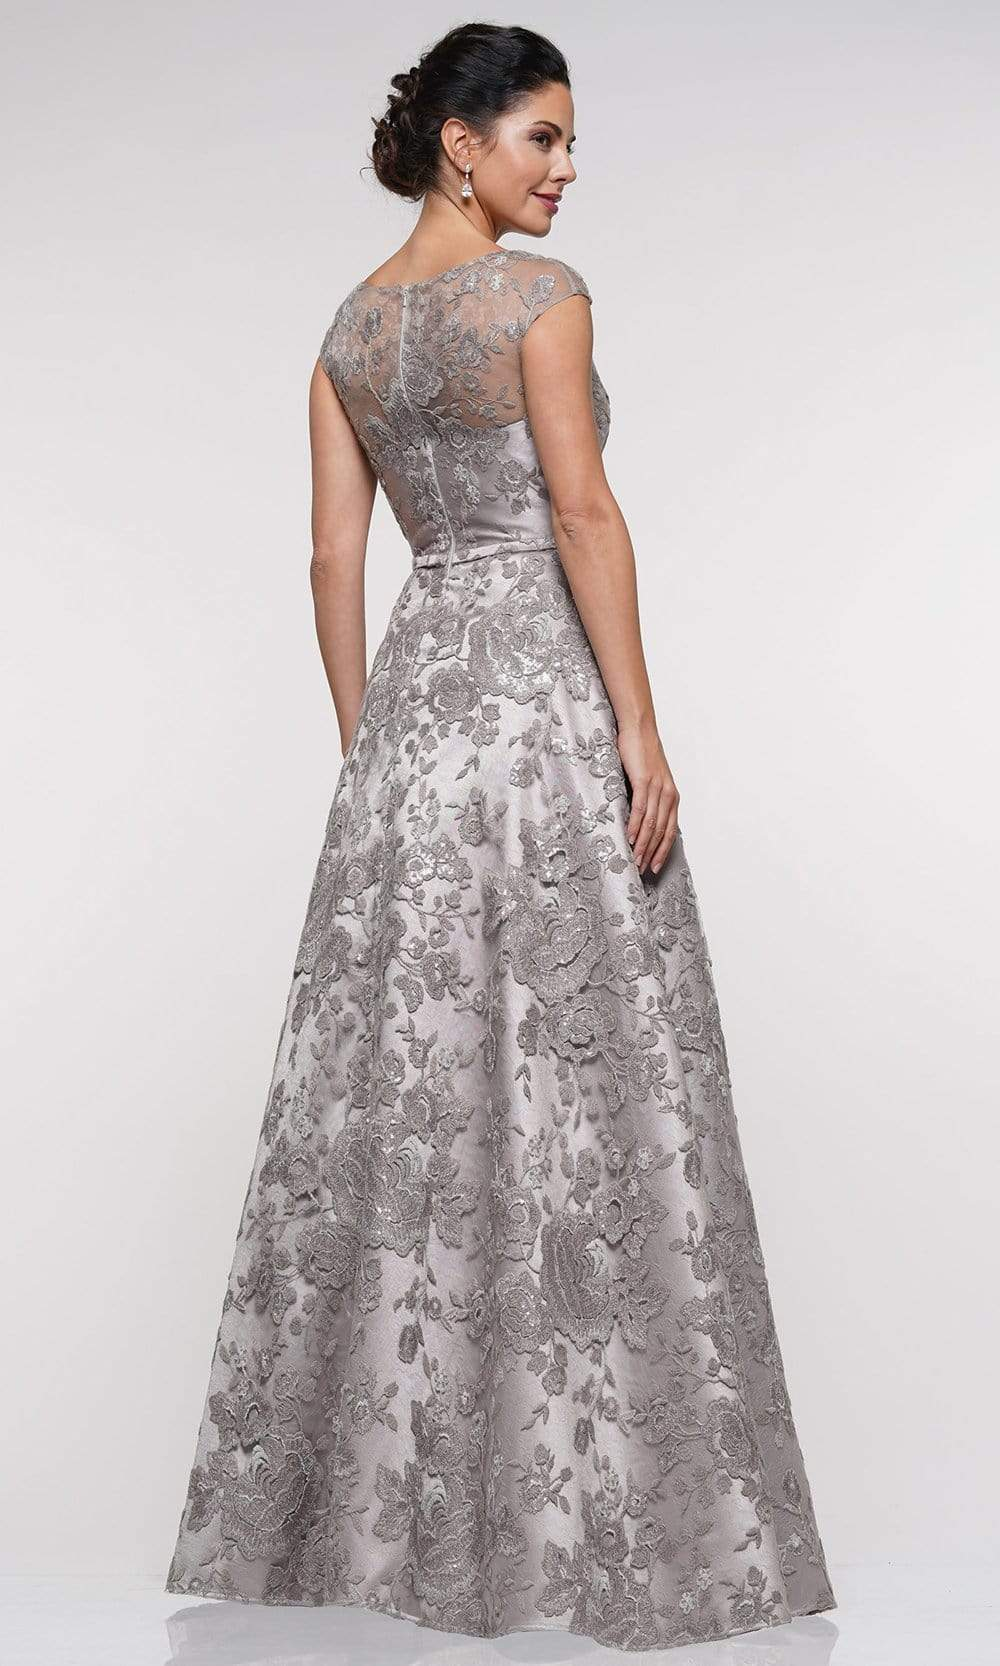 Marsoni By Colors - MV1012 Sequined Rosette Embroidered Long Gown Mother of the Bride Dresses